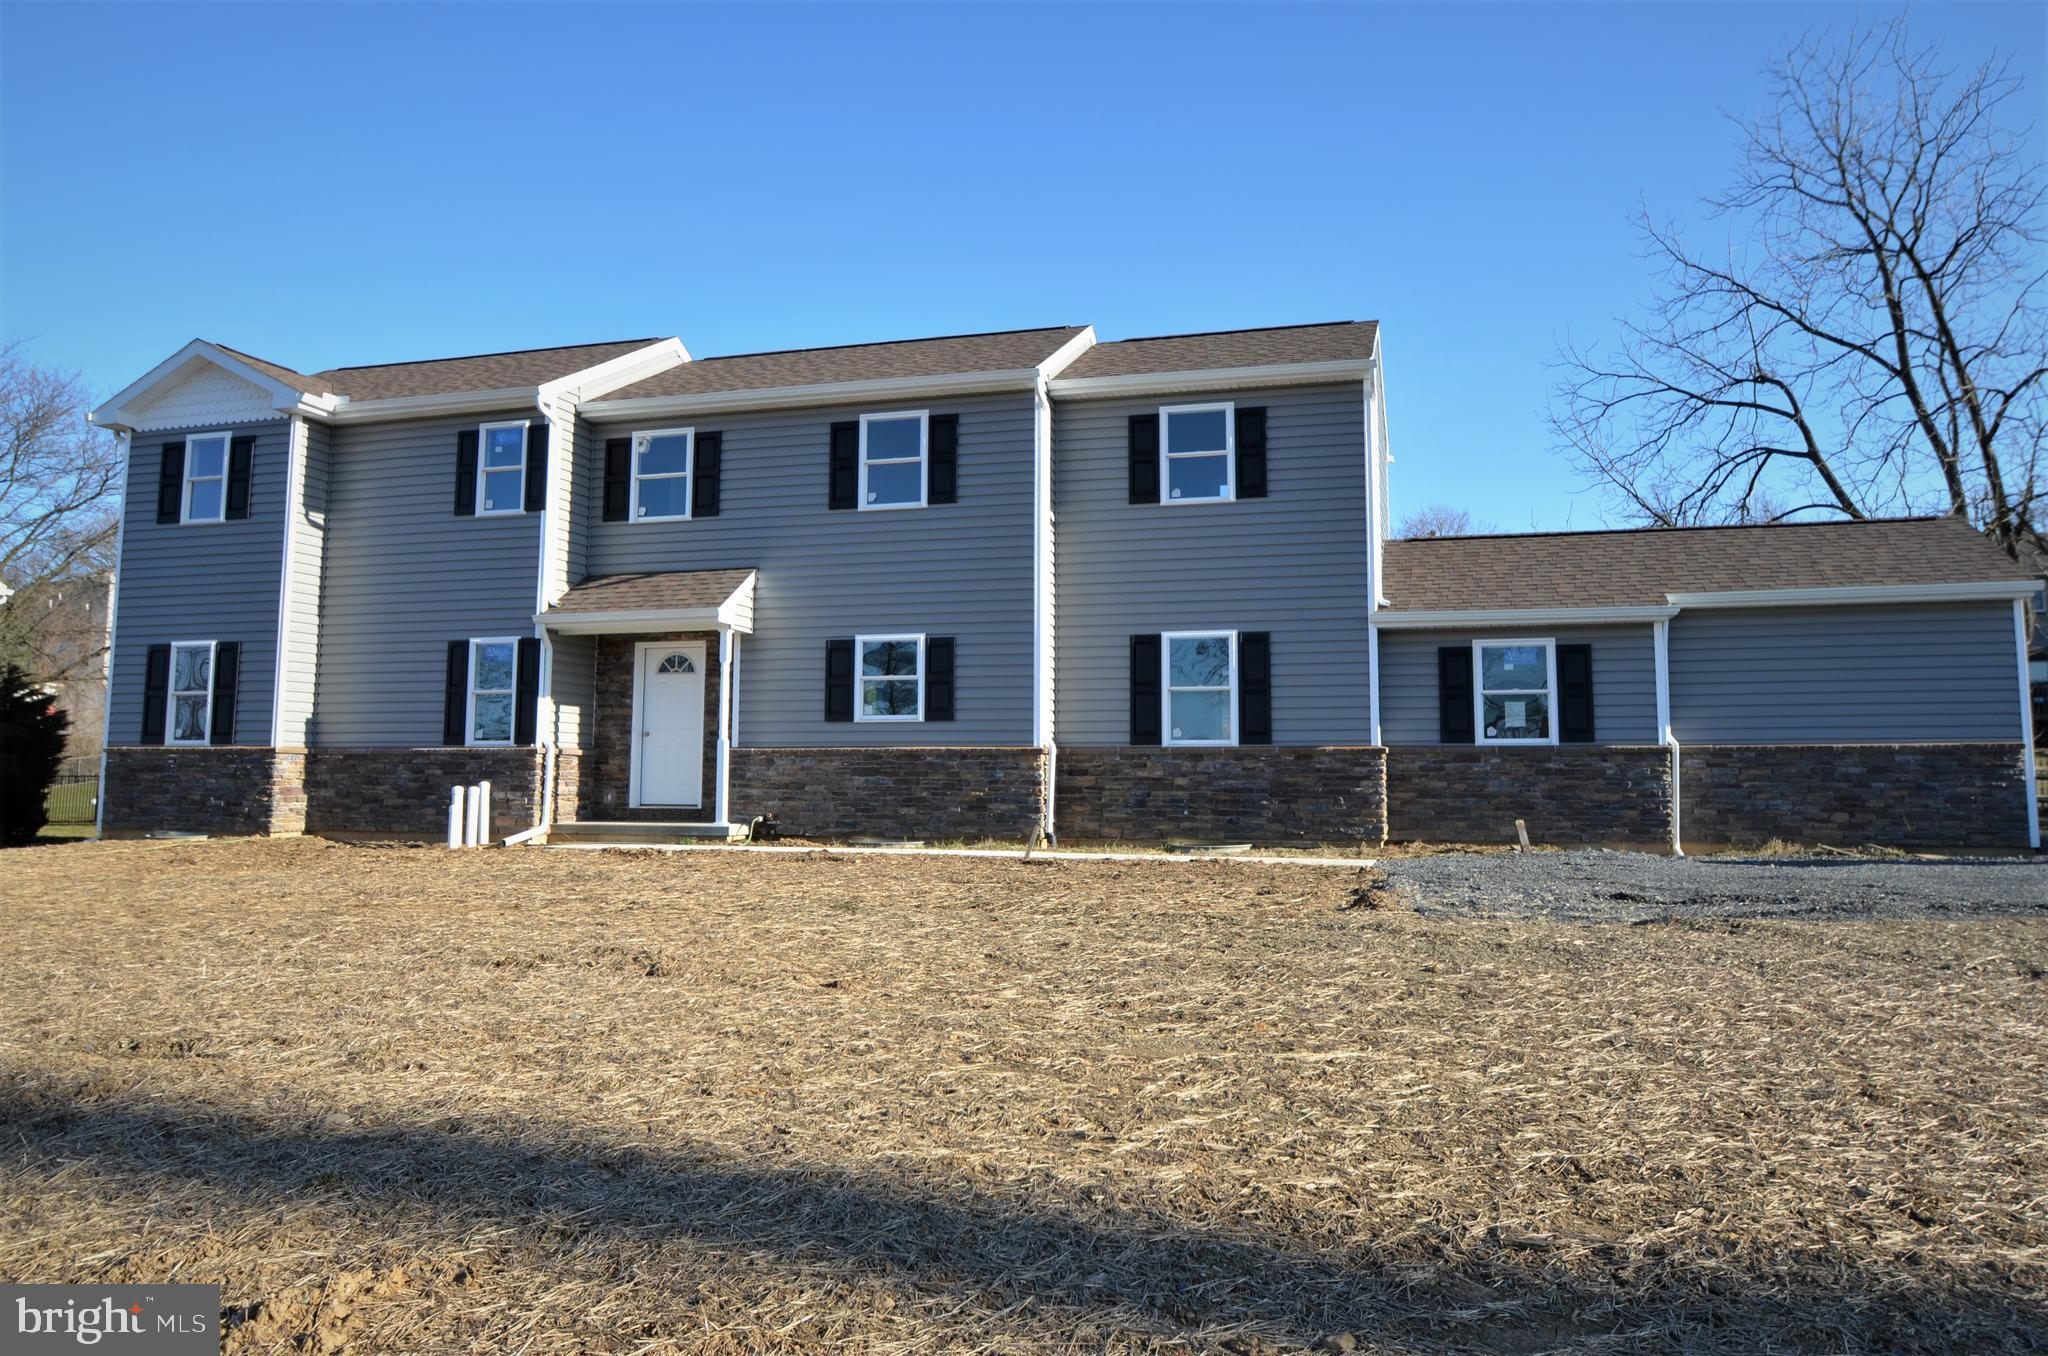 5532 MUTH CIRCLE, ALLENTOWN, PA 18104